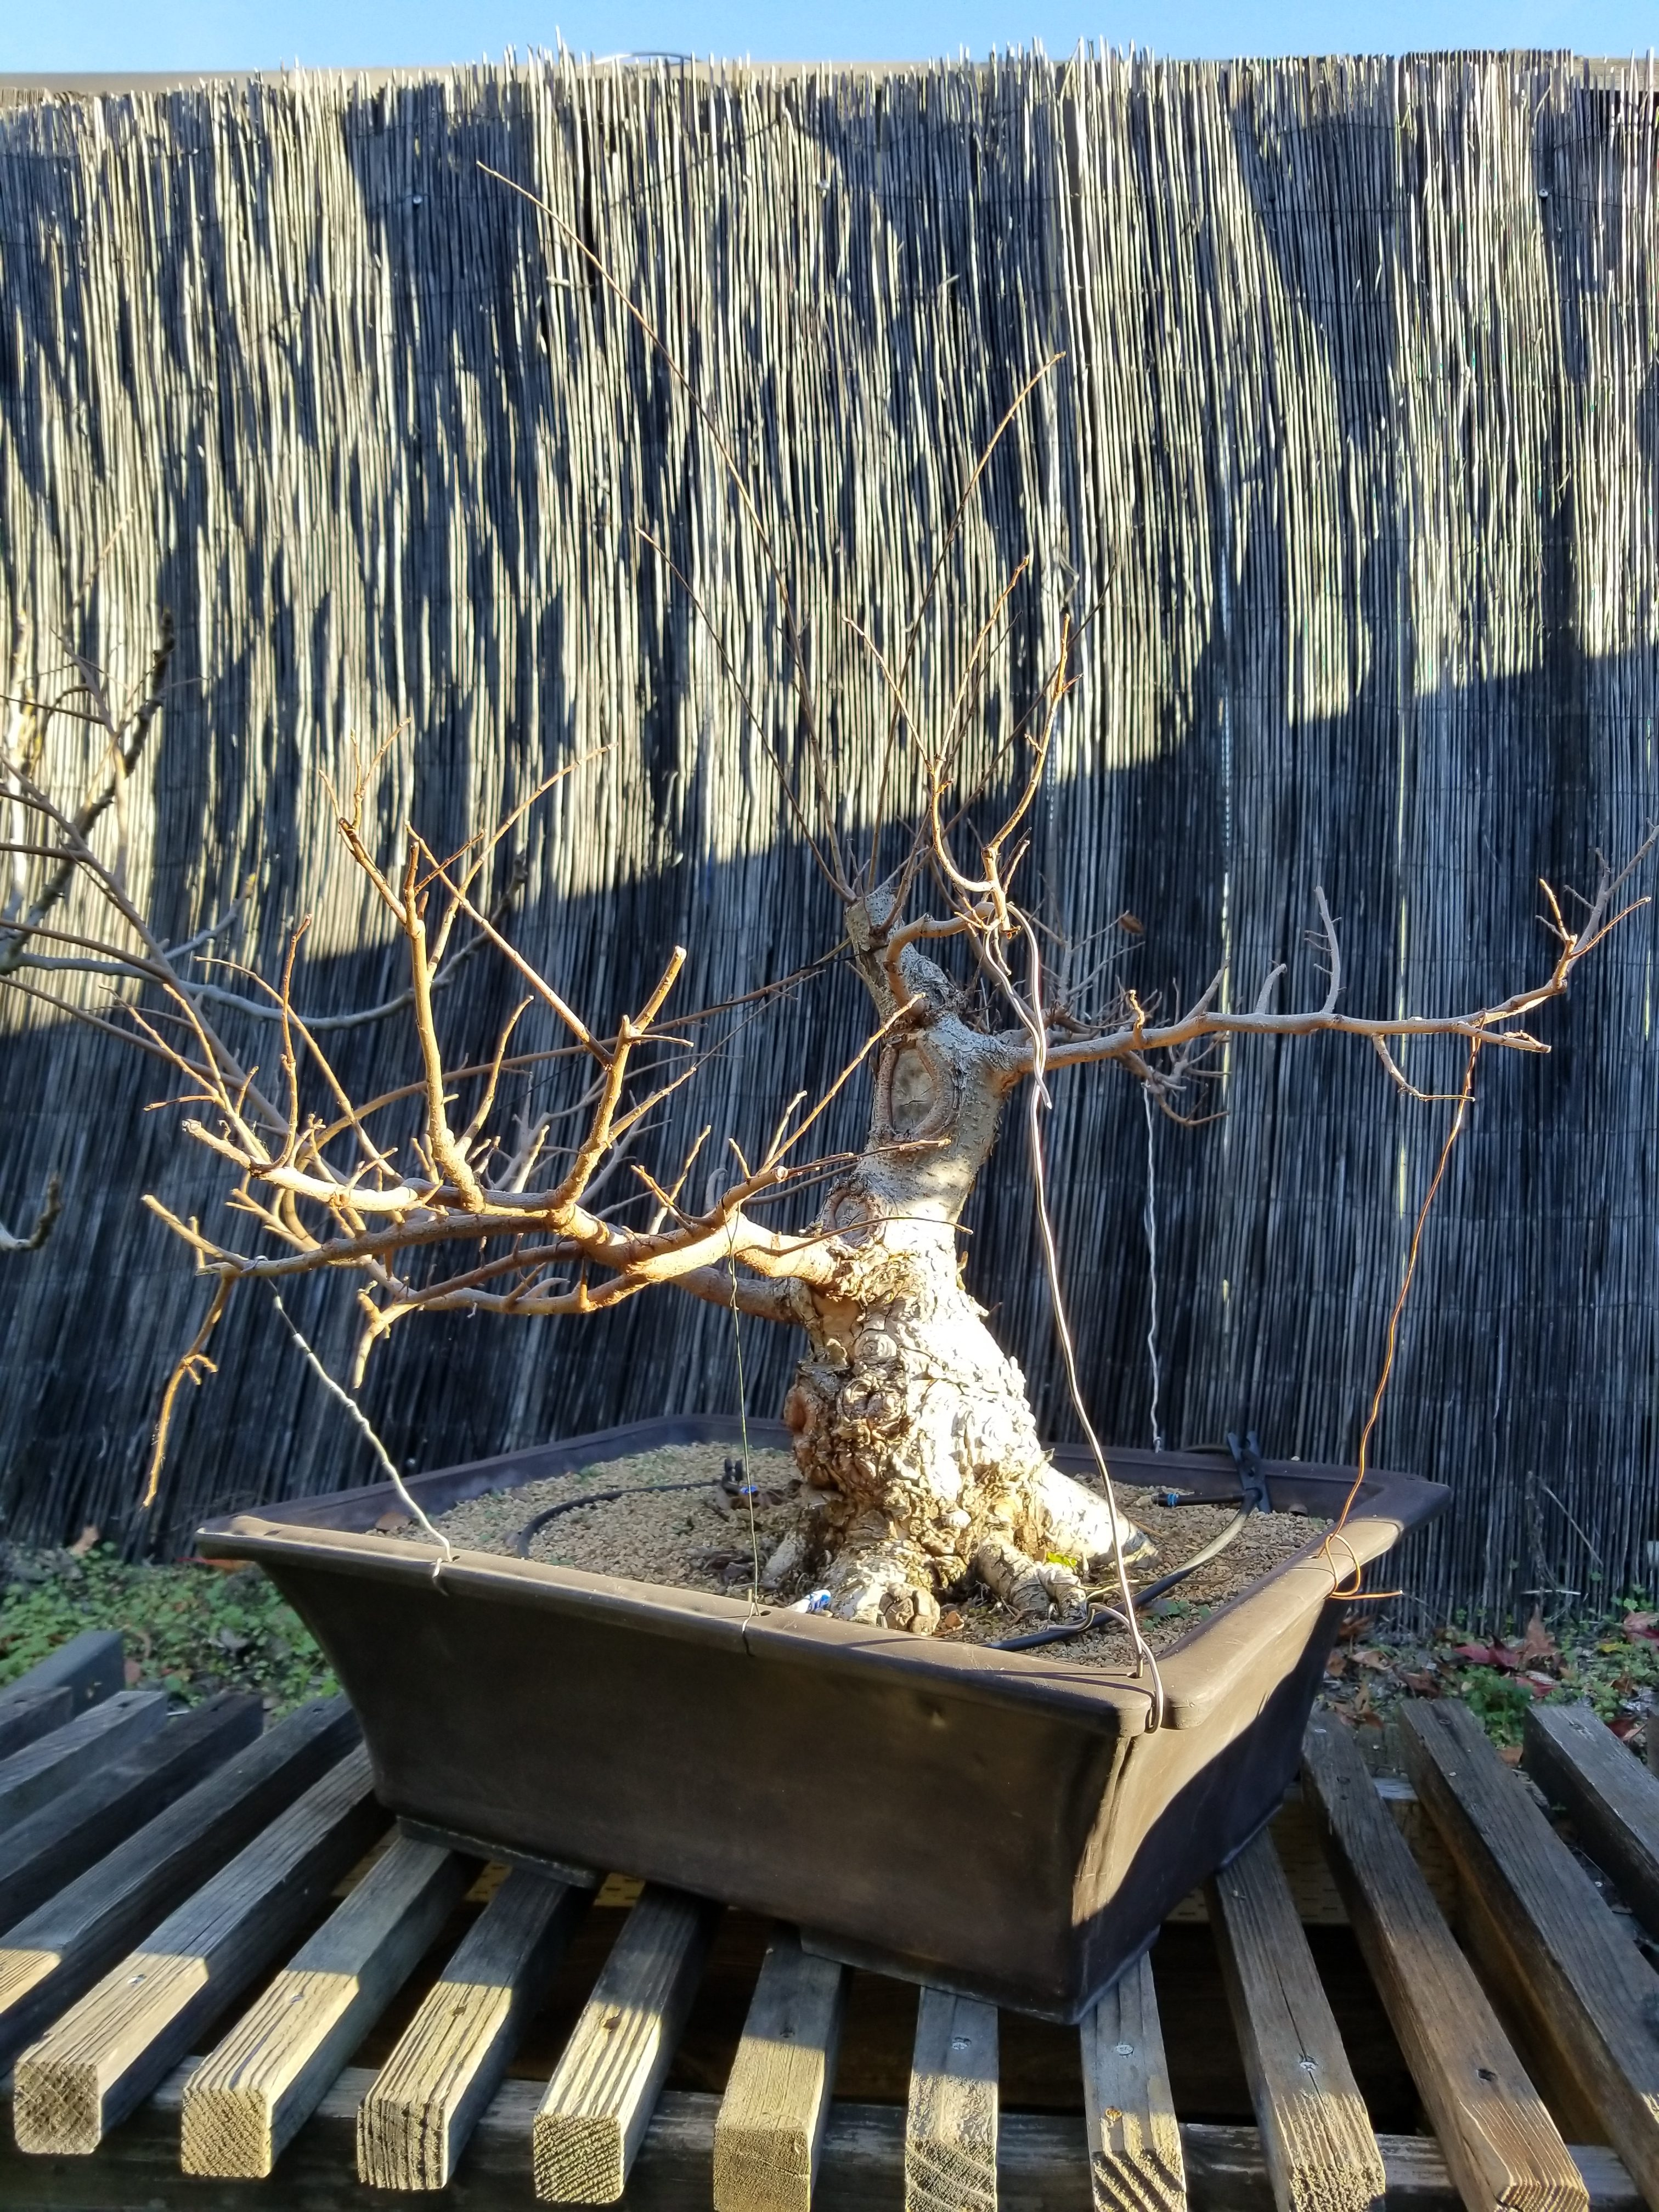 Collected Chinese Elm Bonsai